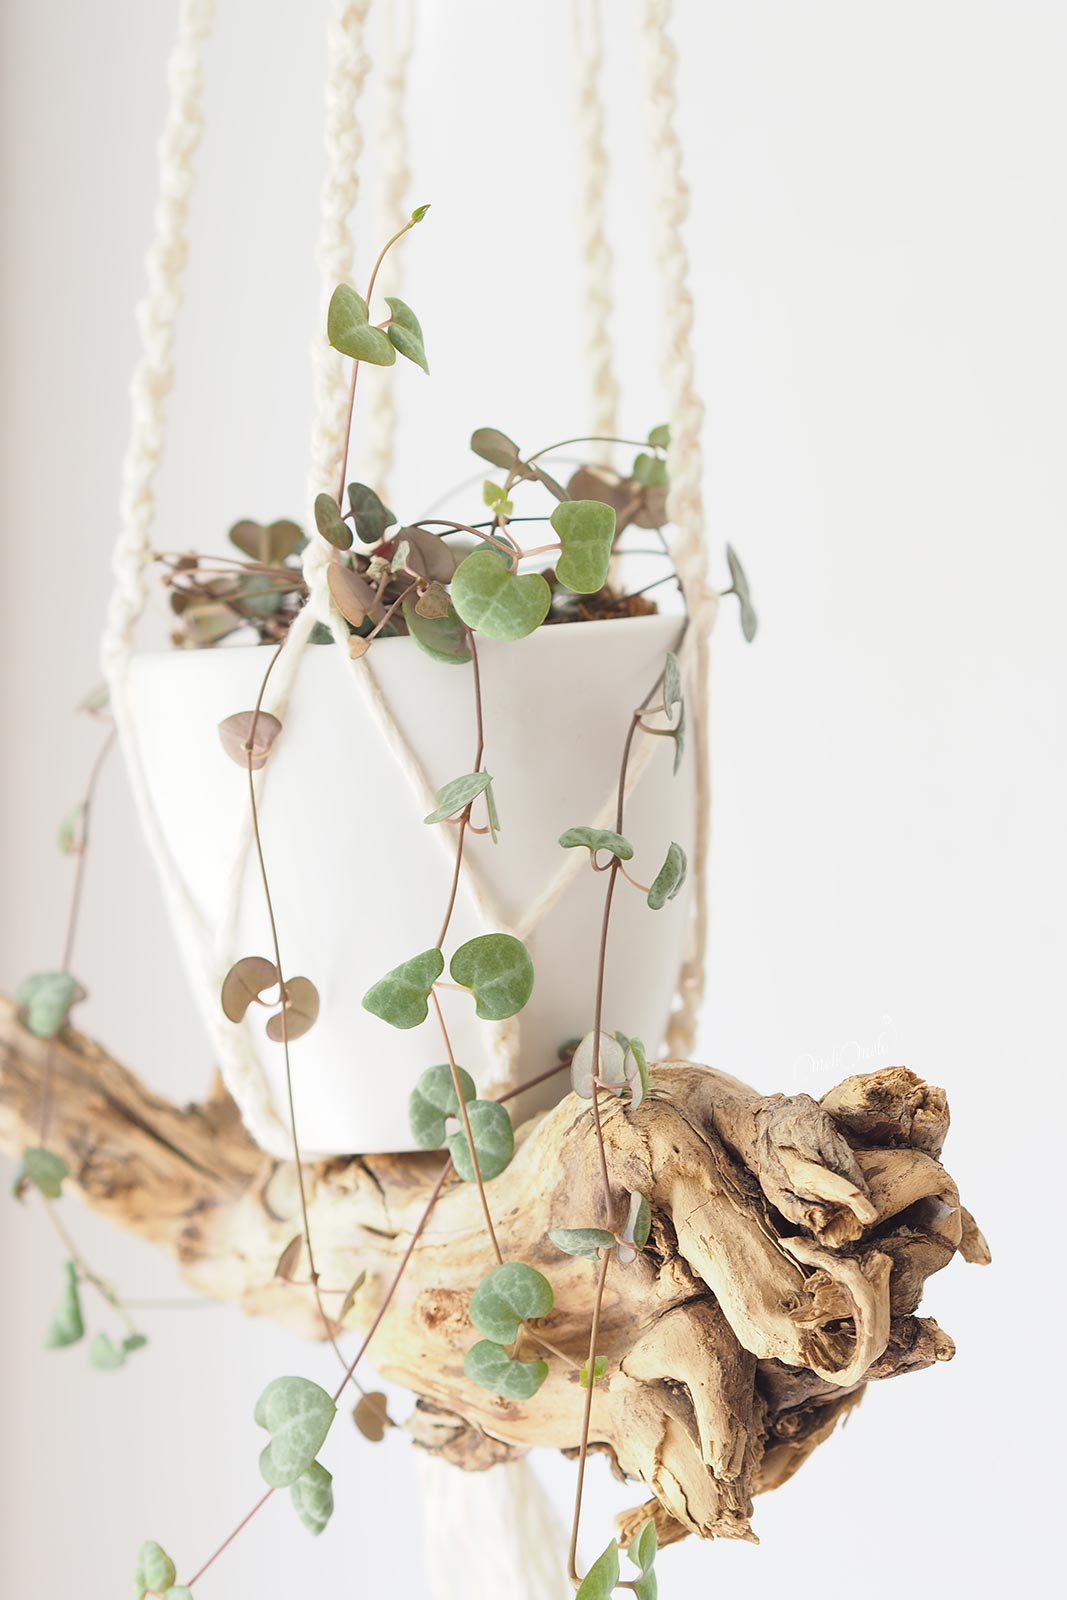 ceropegia-woodii-bouture-tubercules-suspension-bois-laboutiquedemelimelo